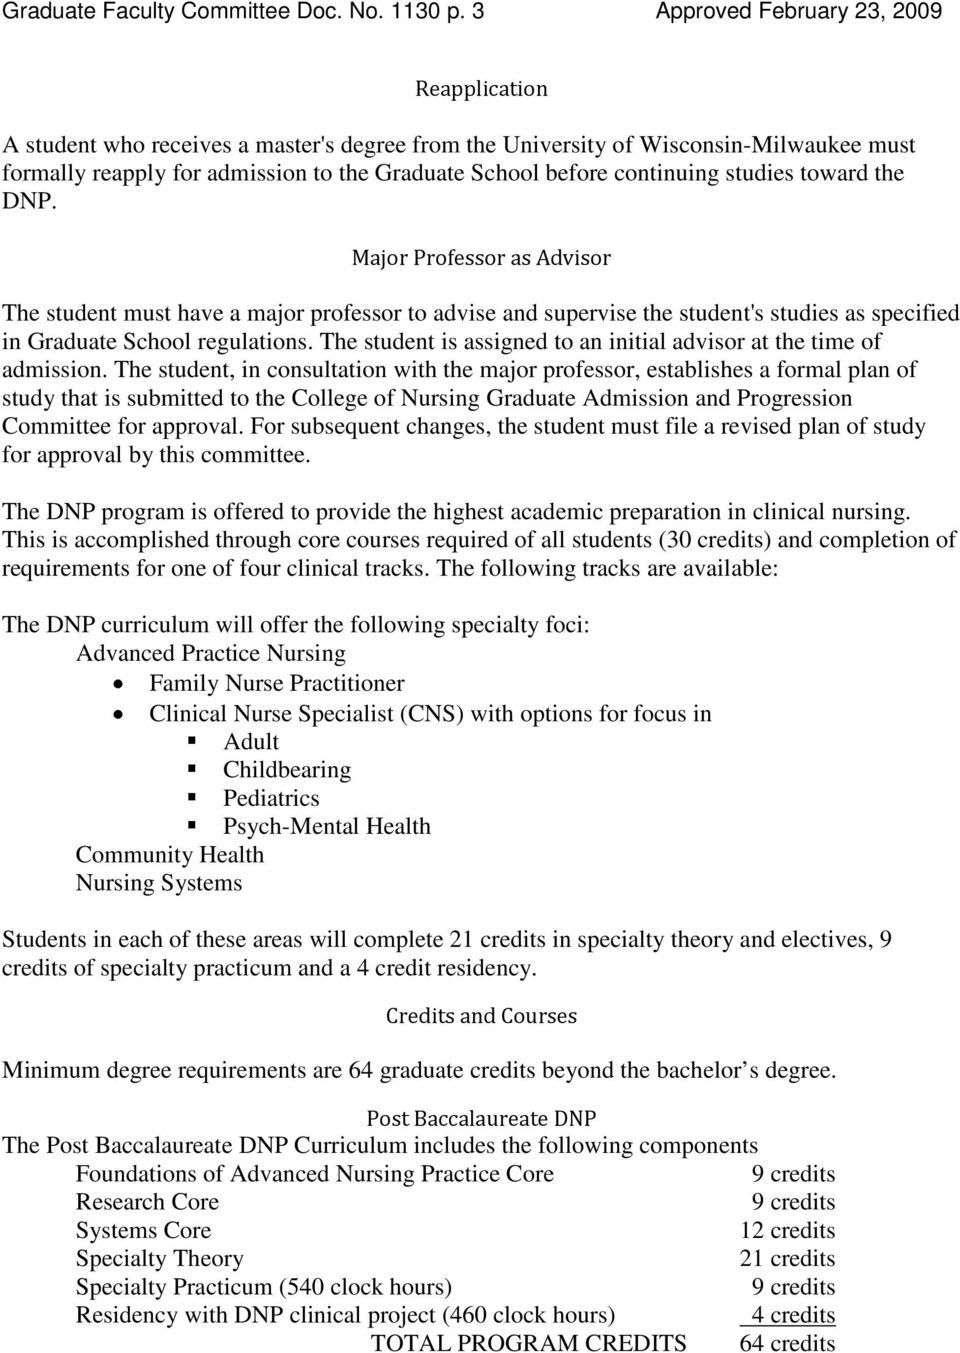 continuing studies toward the DNP. Major Professor as Advisor The student must have a major professor to advise and supervise the student's studies as specified in Graduate School regulations.